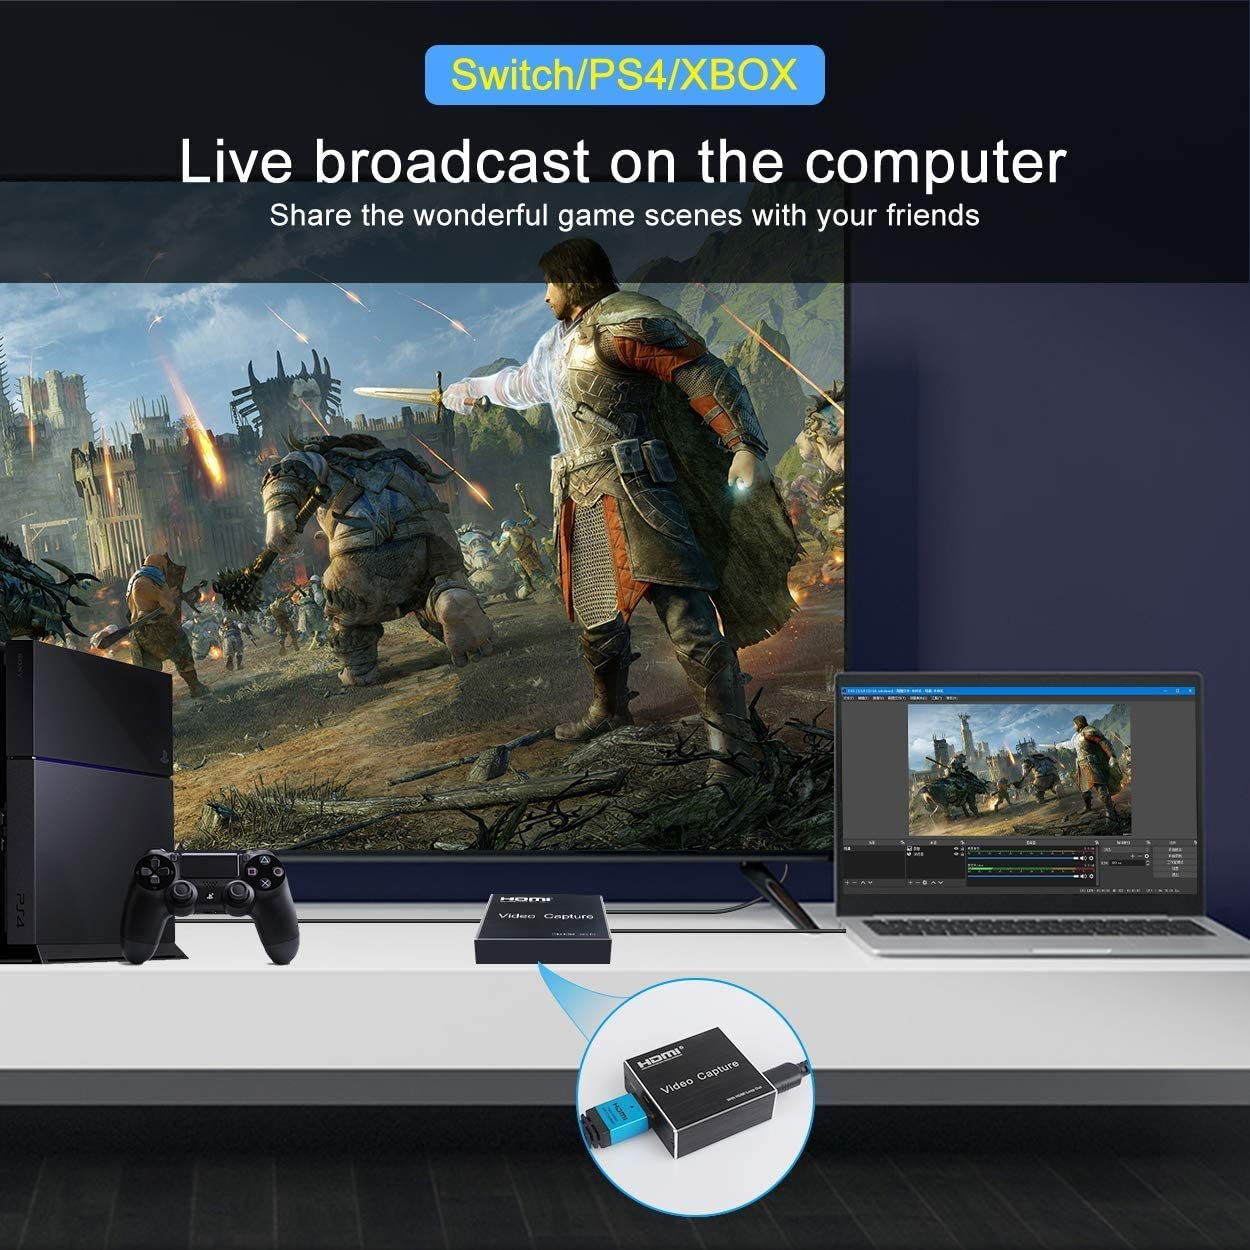 Audio Video Capture Cards, Game Capture Device HDMI to USB 2.0, HD 1080p Video Record Directly to Computer for Gaming,Teaching, Video Conference, Streaming, Teaching, Live Broadcasting